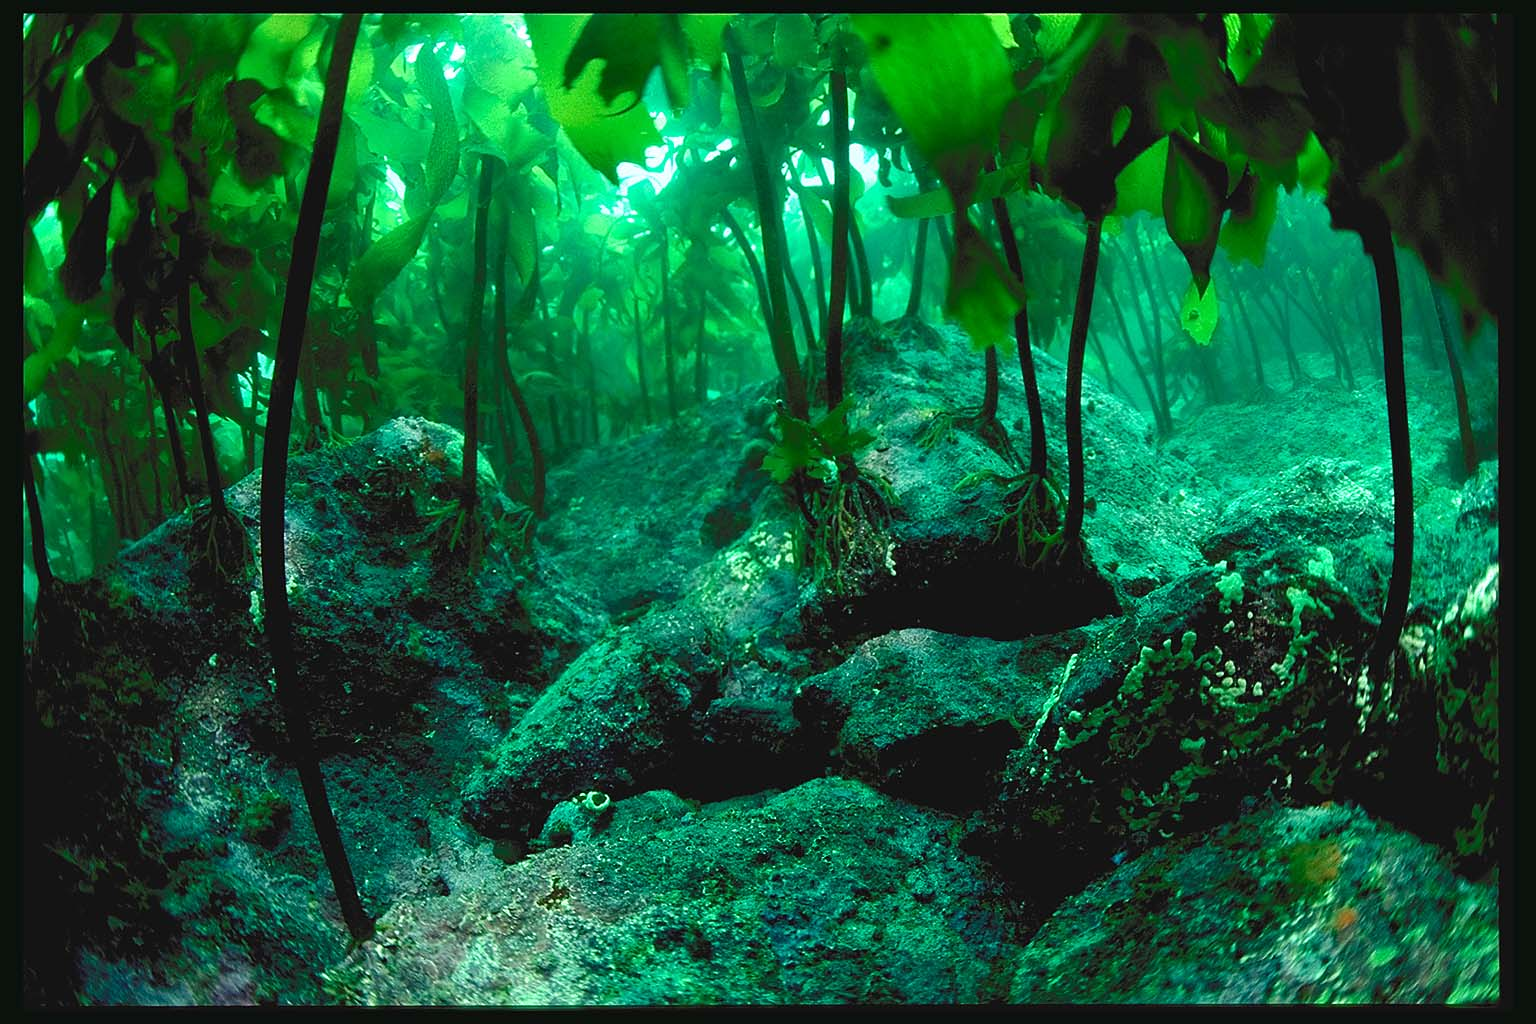 Kelp Forest by Kxmode on DeviantArt